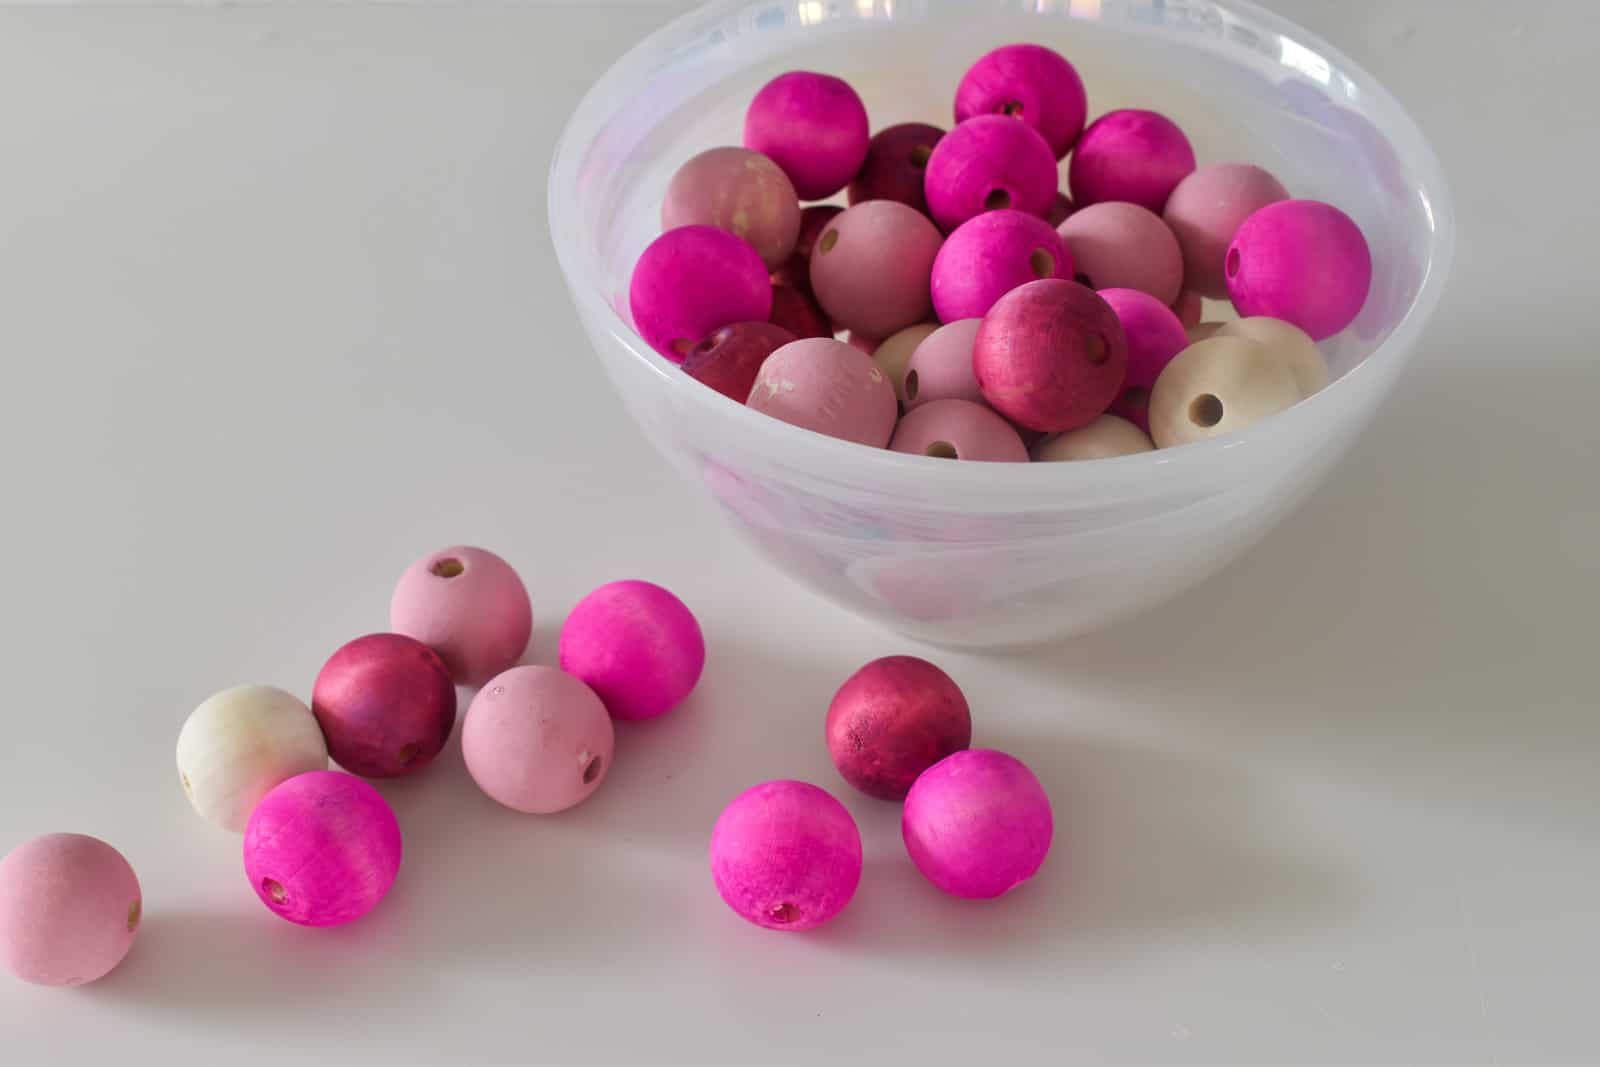 red and pink colored wooden beads